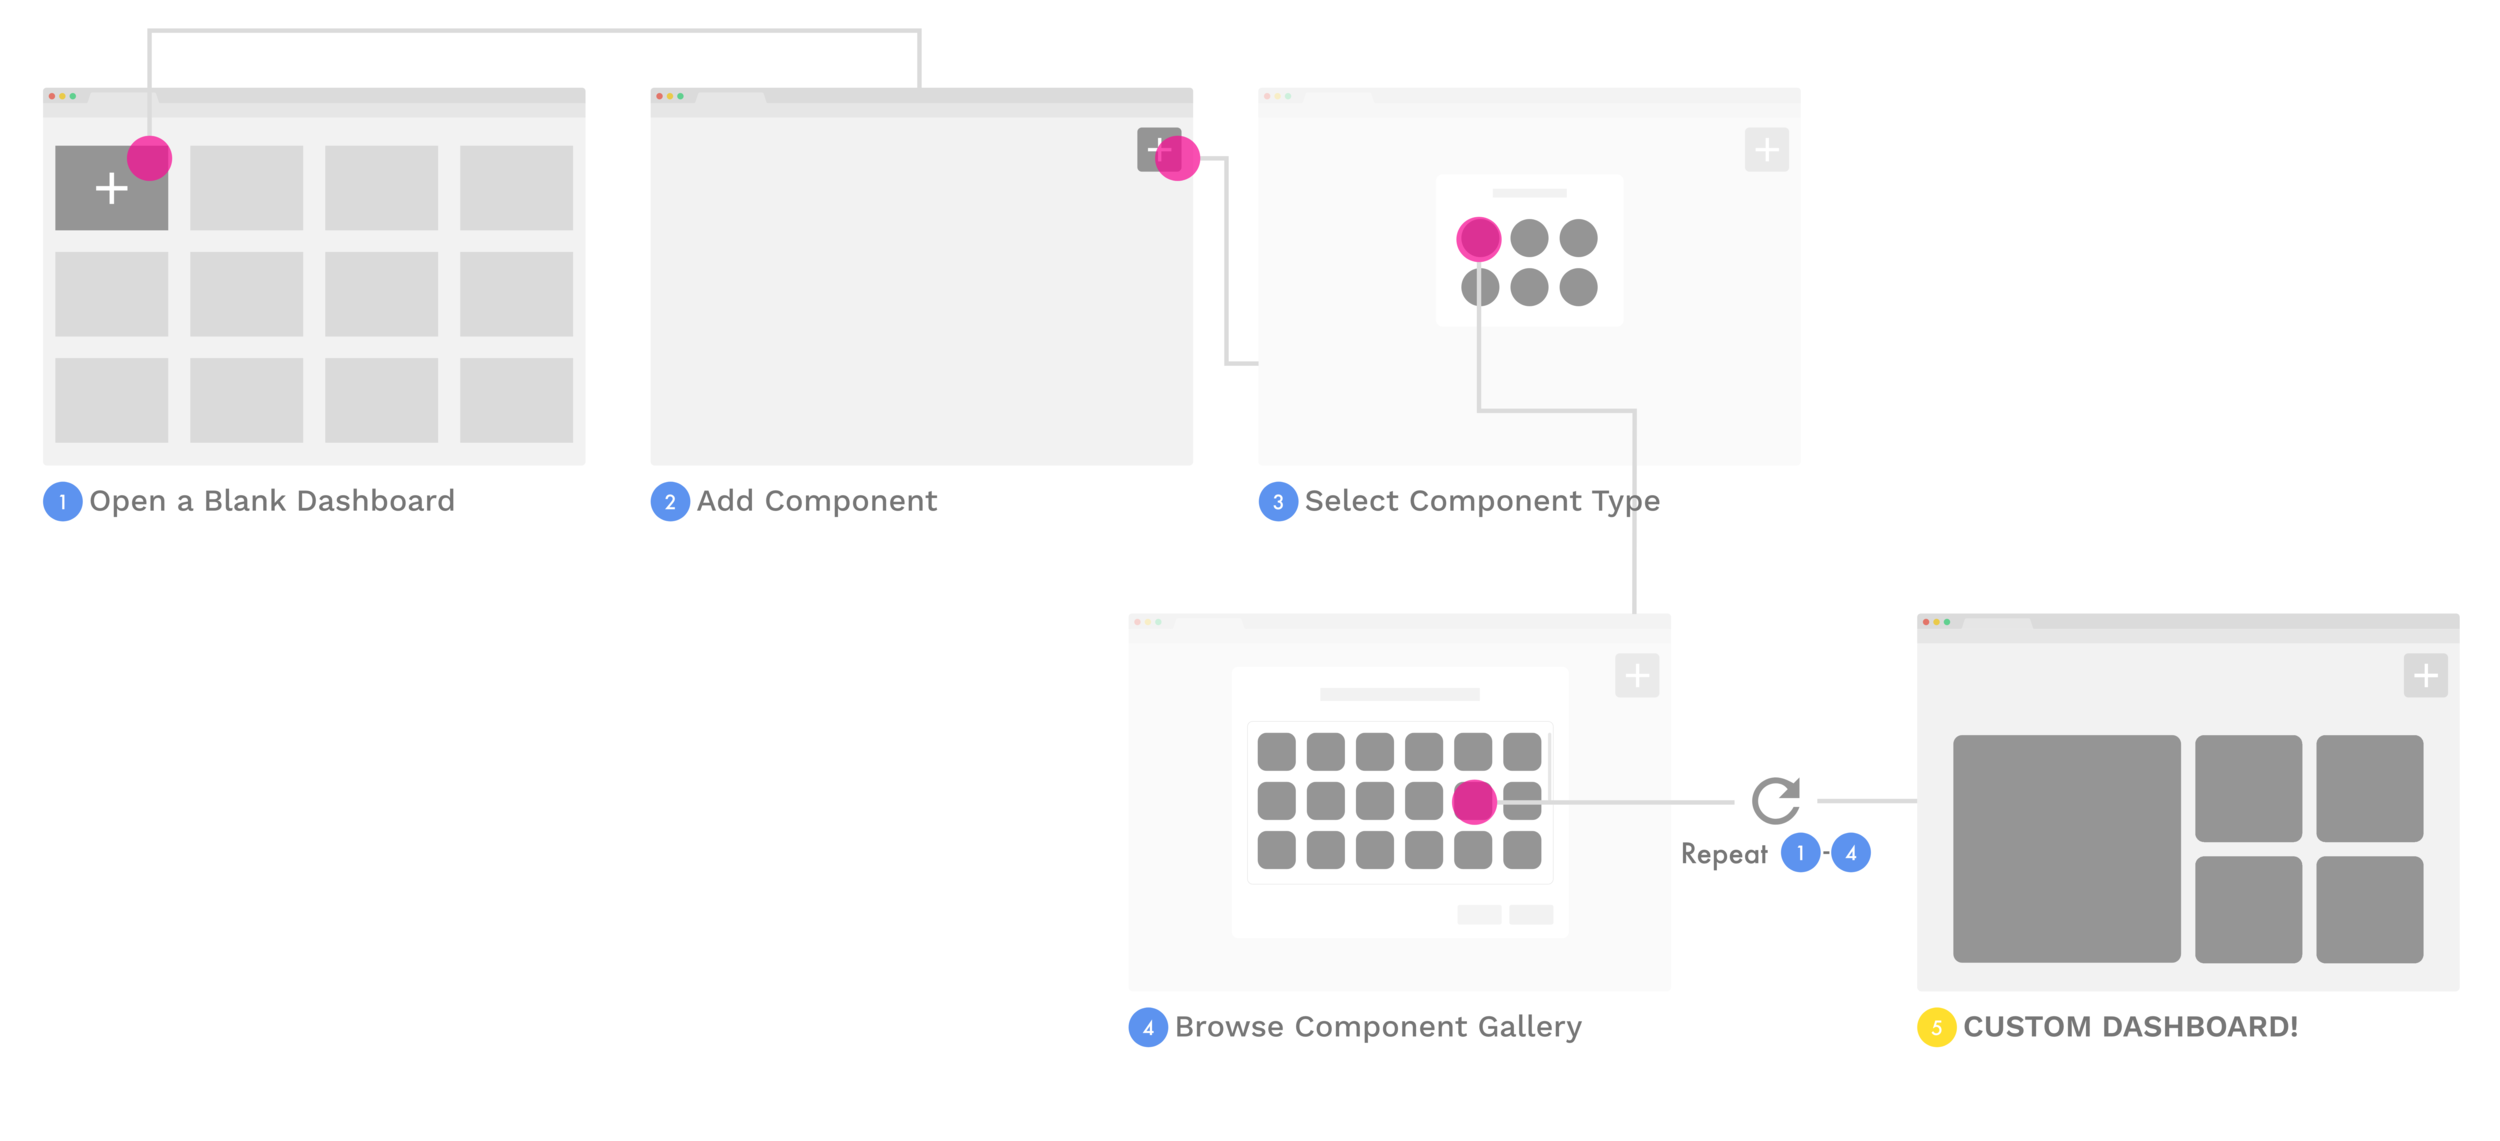 Template flow for Dashboard Builder